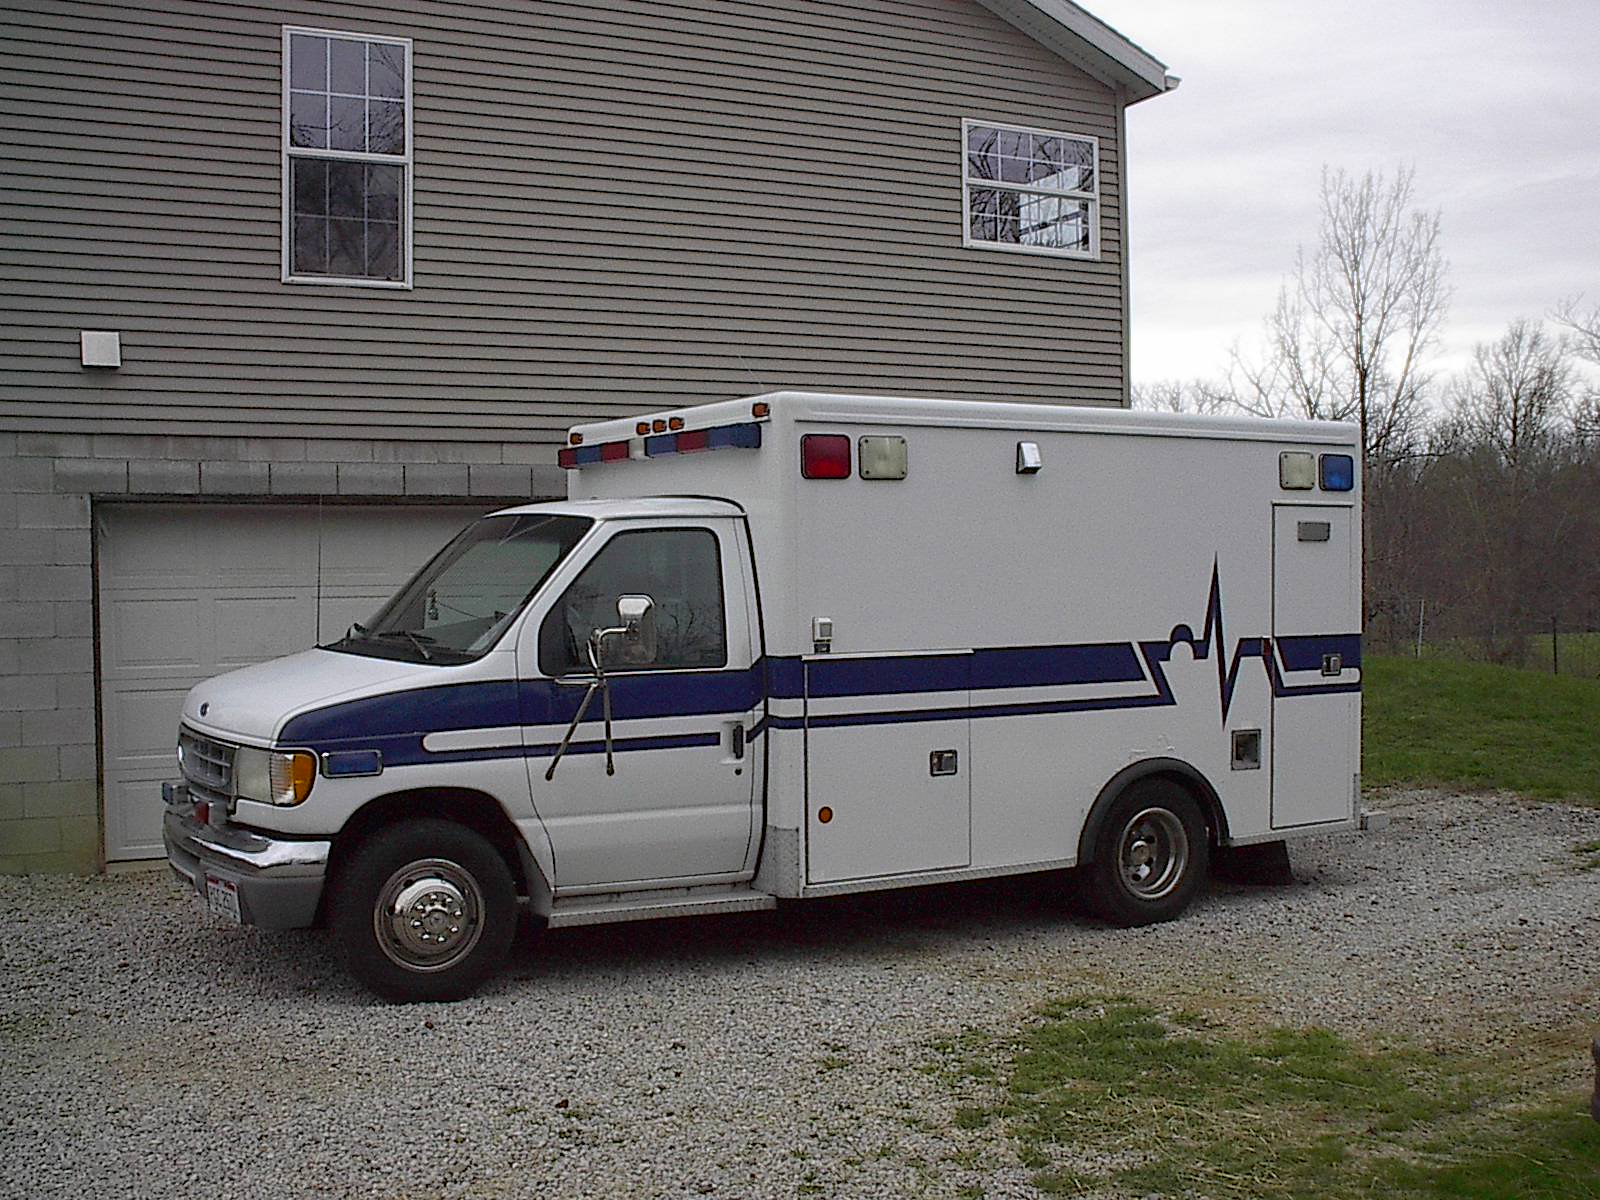 Picture of ambulance, the company truck. 24/7 Electrical Service.